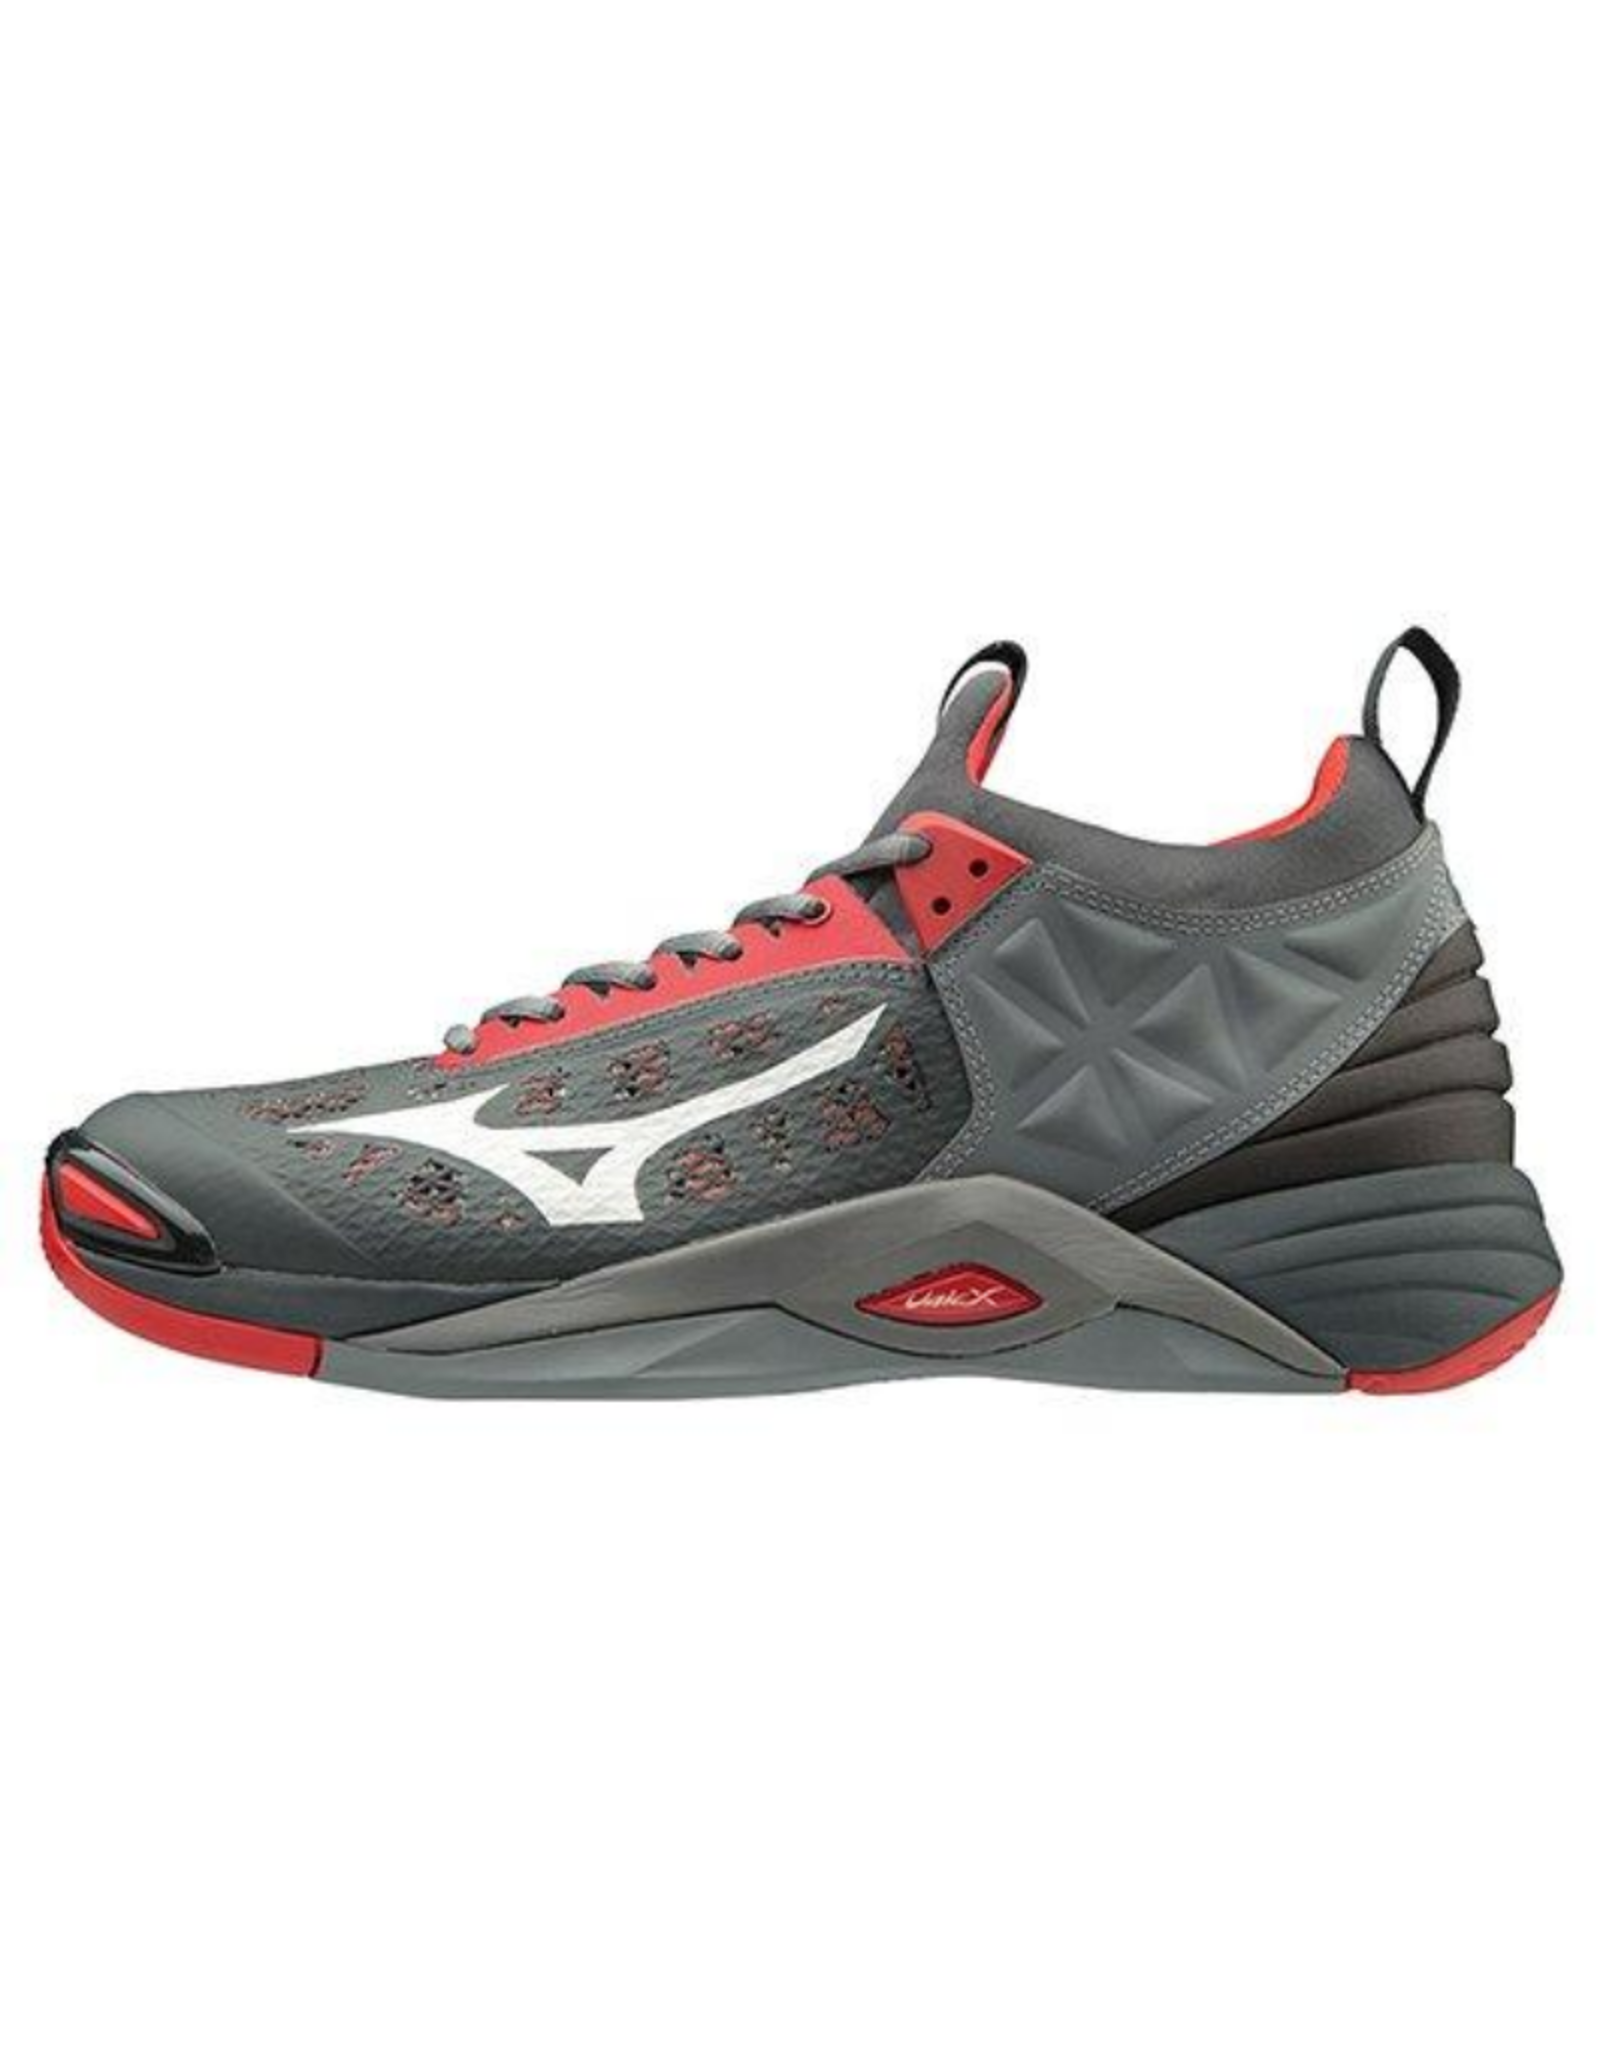 Mizuno Men's Wave Momentum Shoe Grey/Red